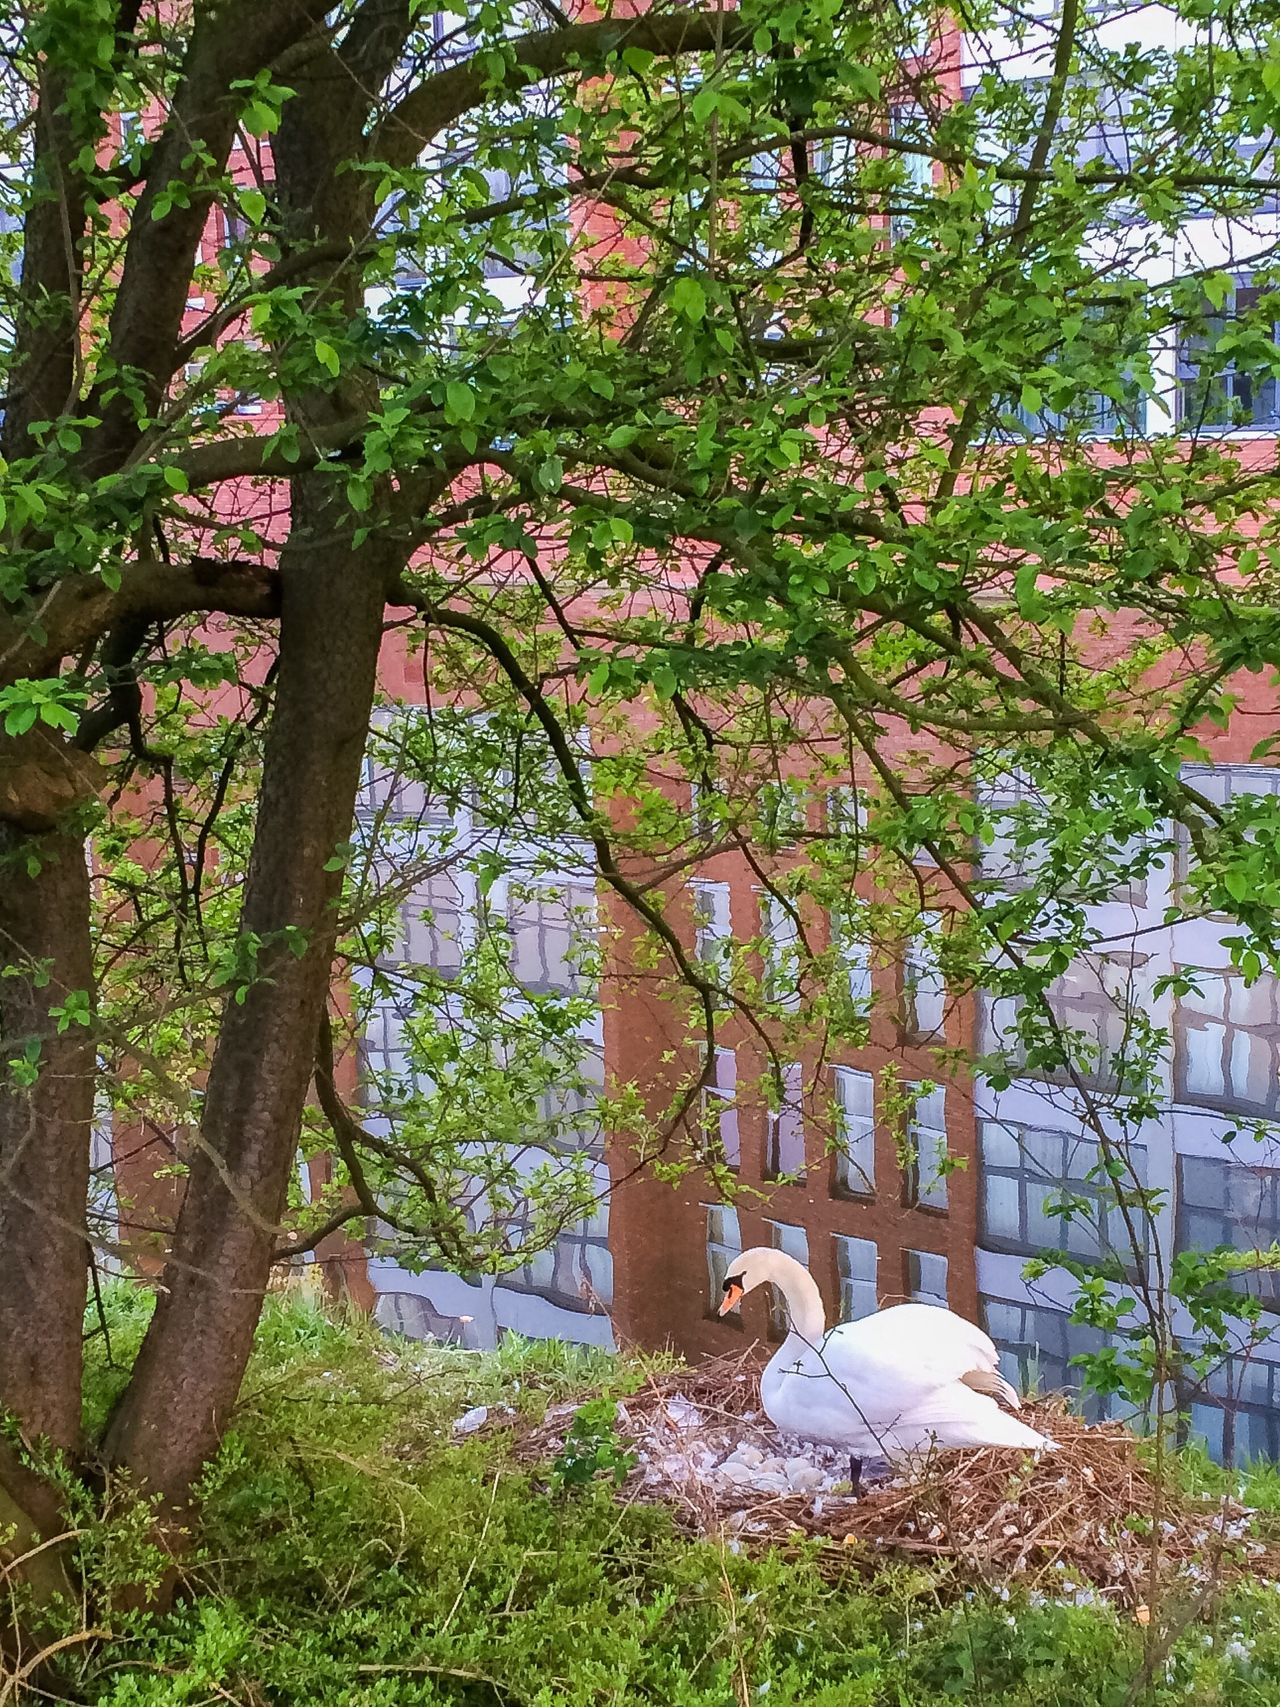 Showcase April Swan Swan Nest Nest Swan Eggs Eggs In The Nest Feathers Tree Buildings Building Reflections Reflection Water Water Reflections